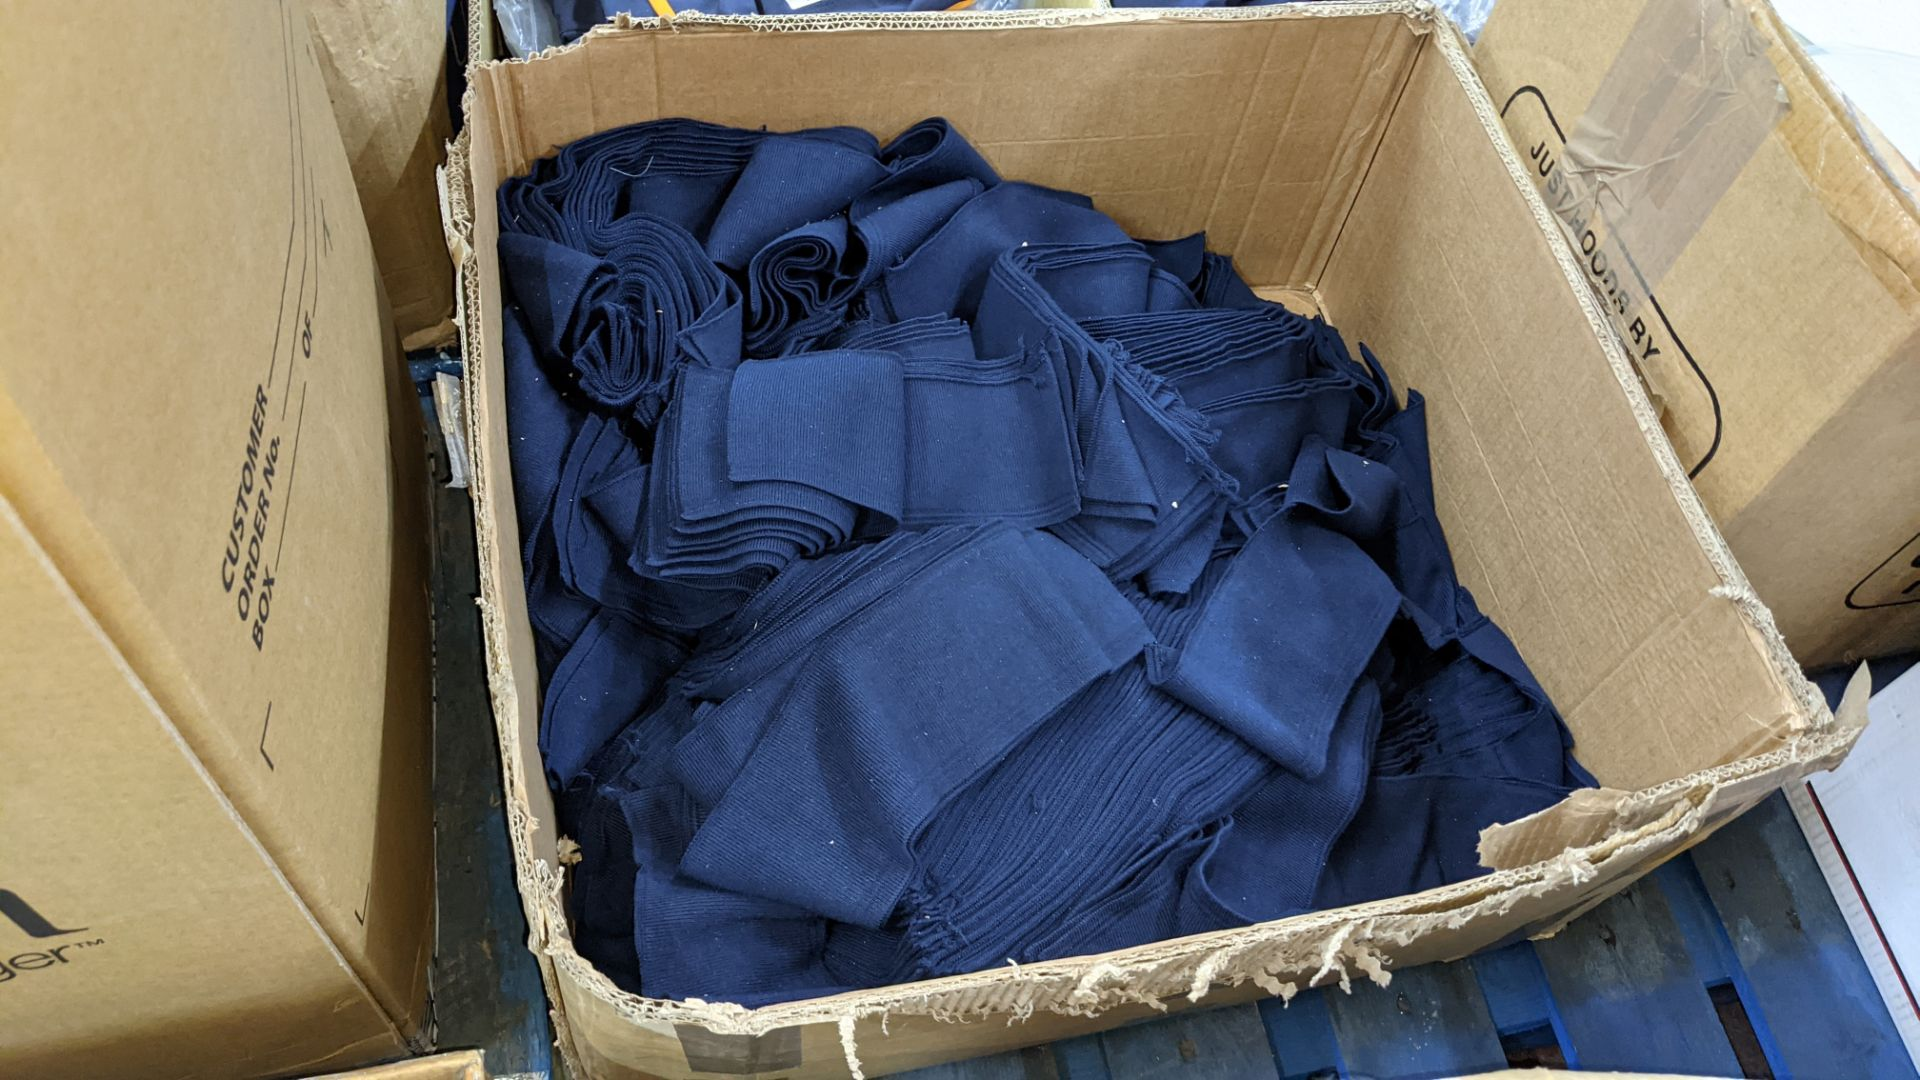 Quantity of assorted pieces of fabric in blue, green & black - this lot consists of 4 assorted size - Image 6 of 7